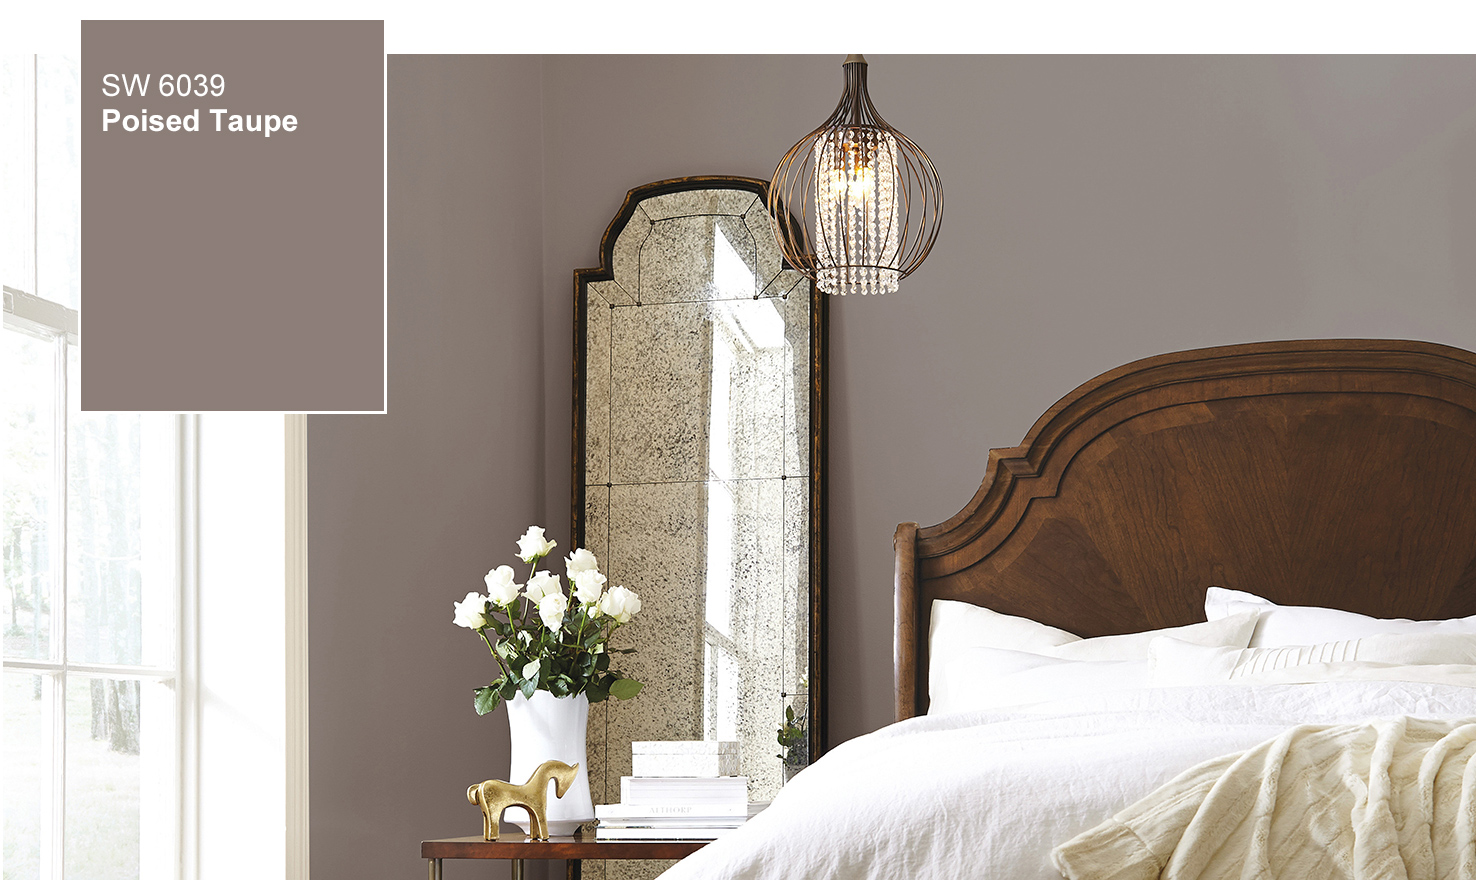 Introducing The 2017 Color Of The Year U2013 Poised Taupe SW 6039 By Sherwin  Williams